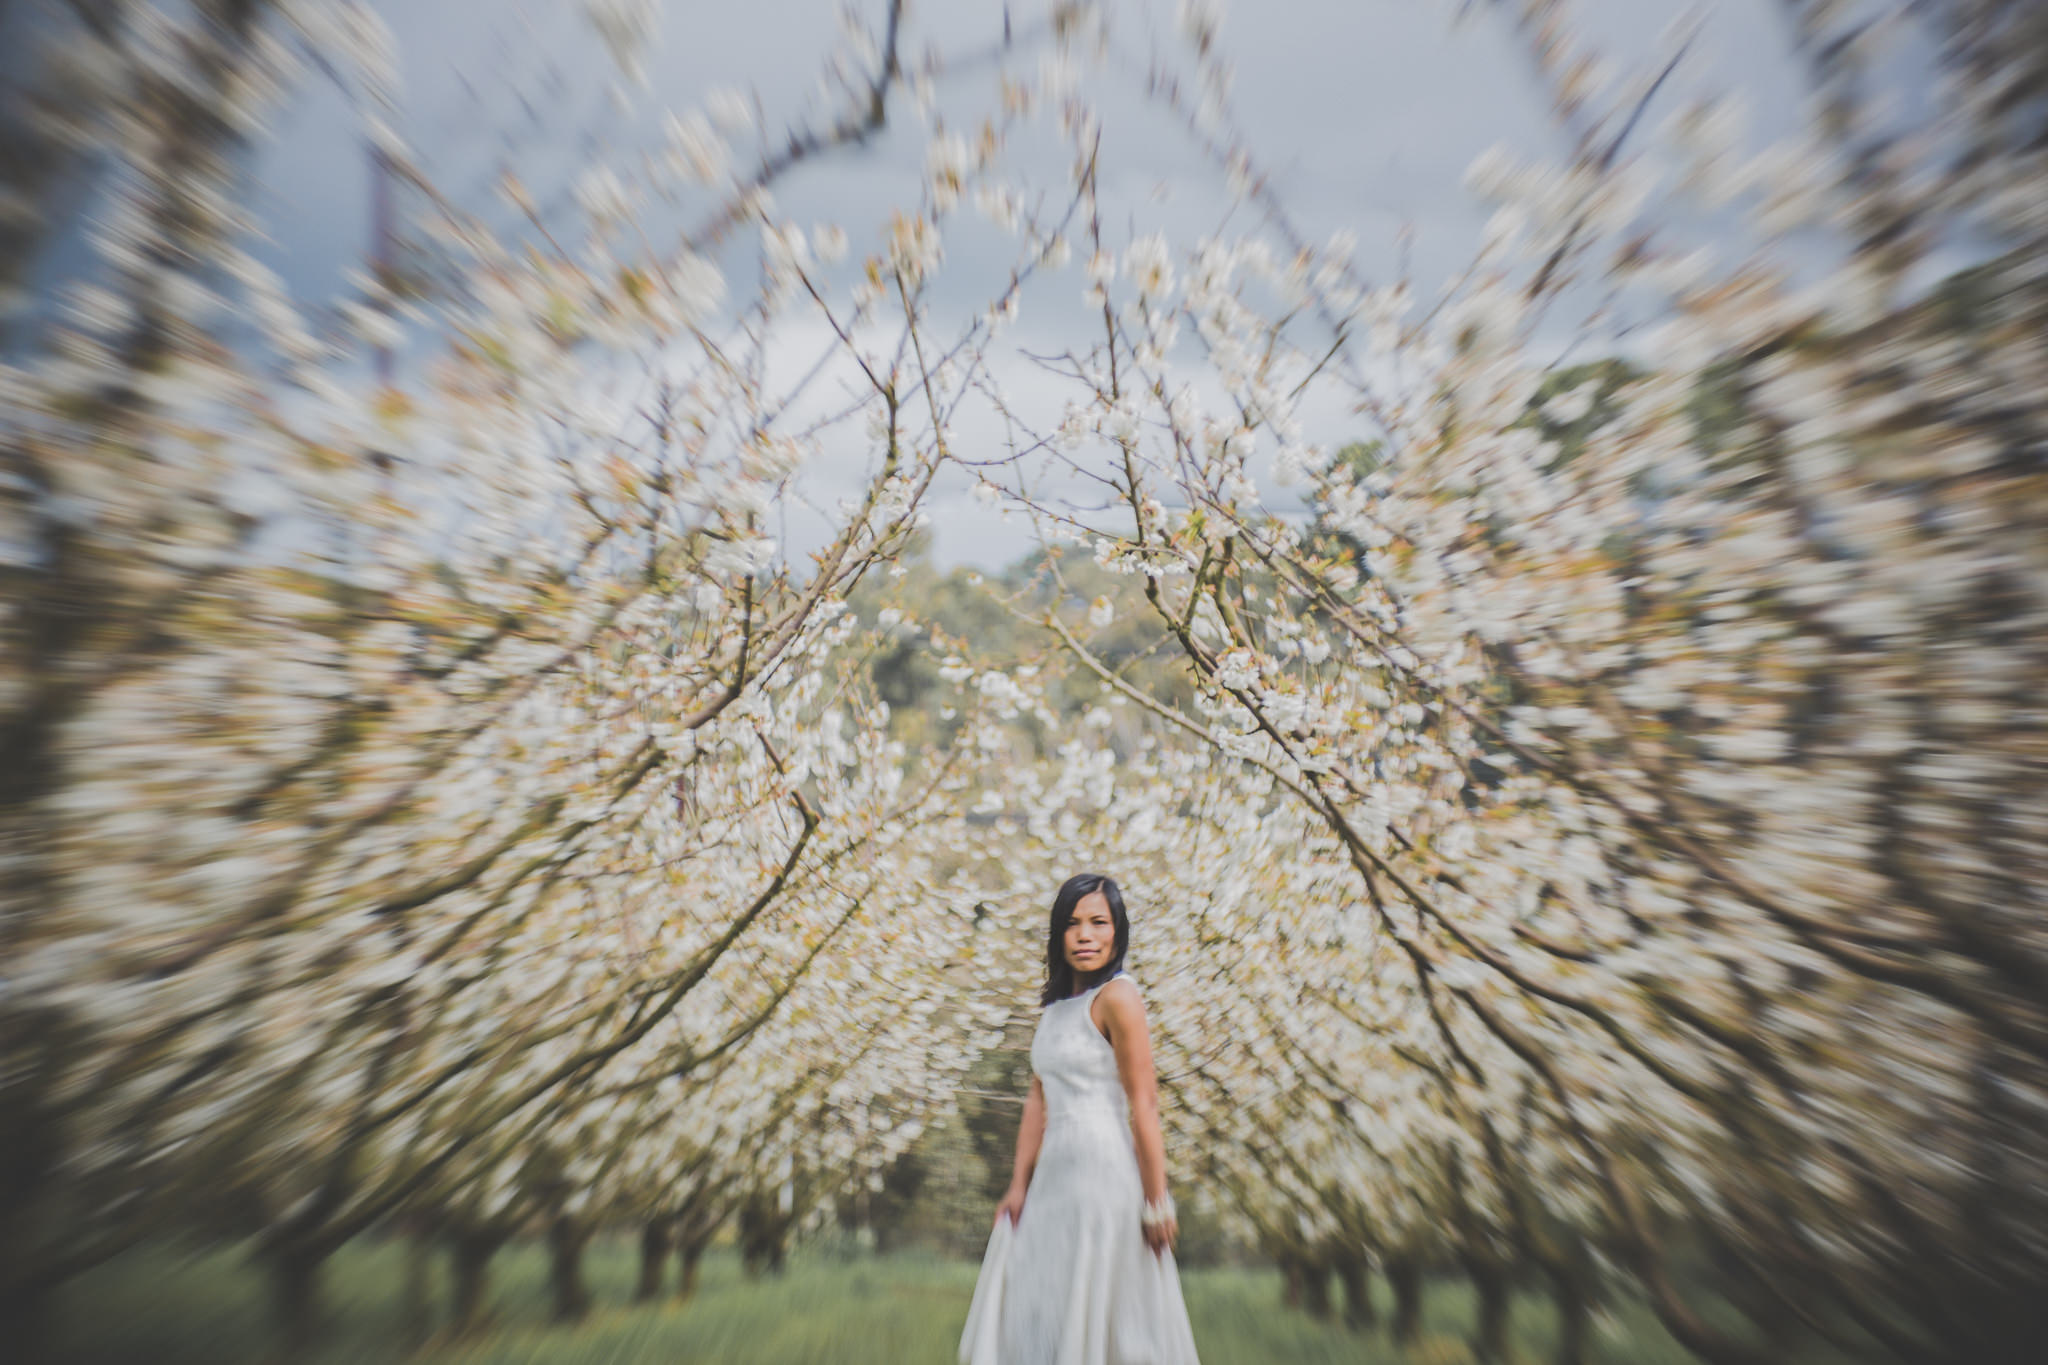 cherry blossom photos Melbourne - best creative fine art wedding photographer in melbourne